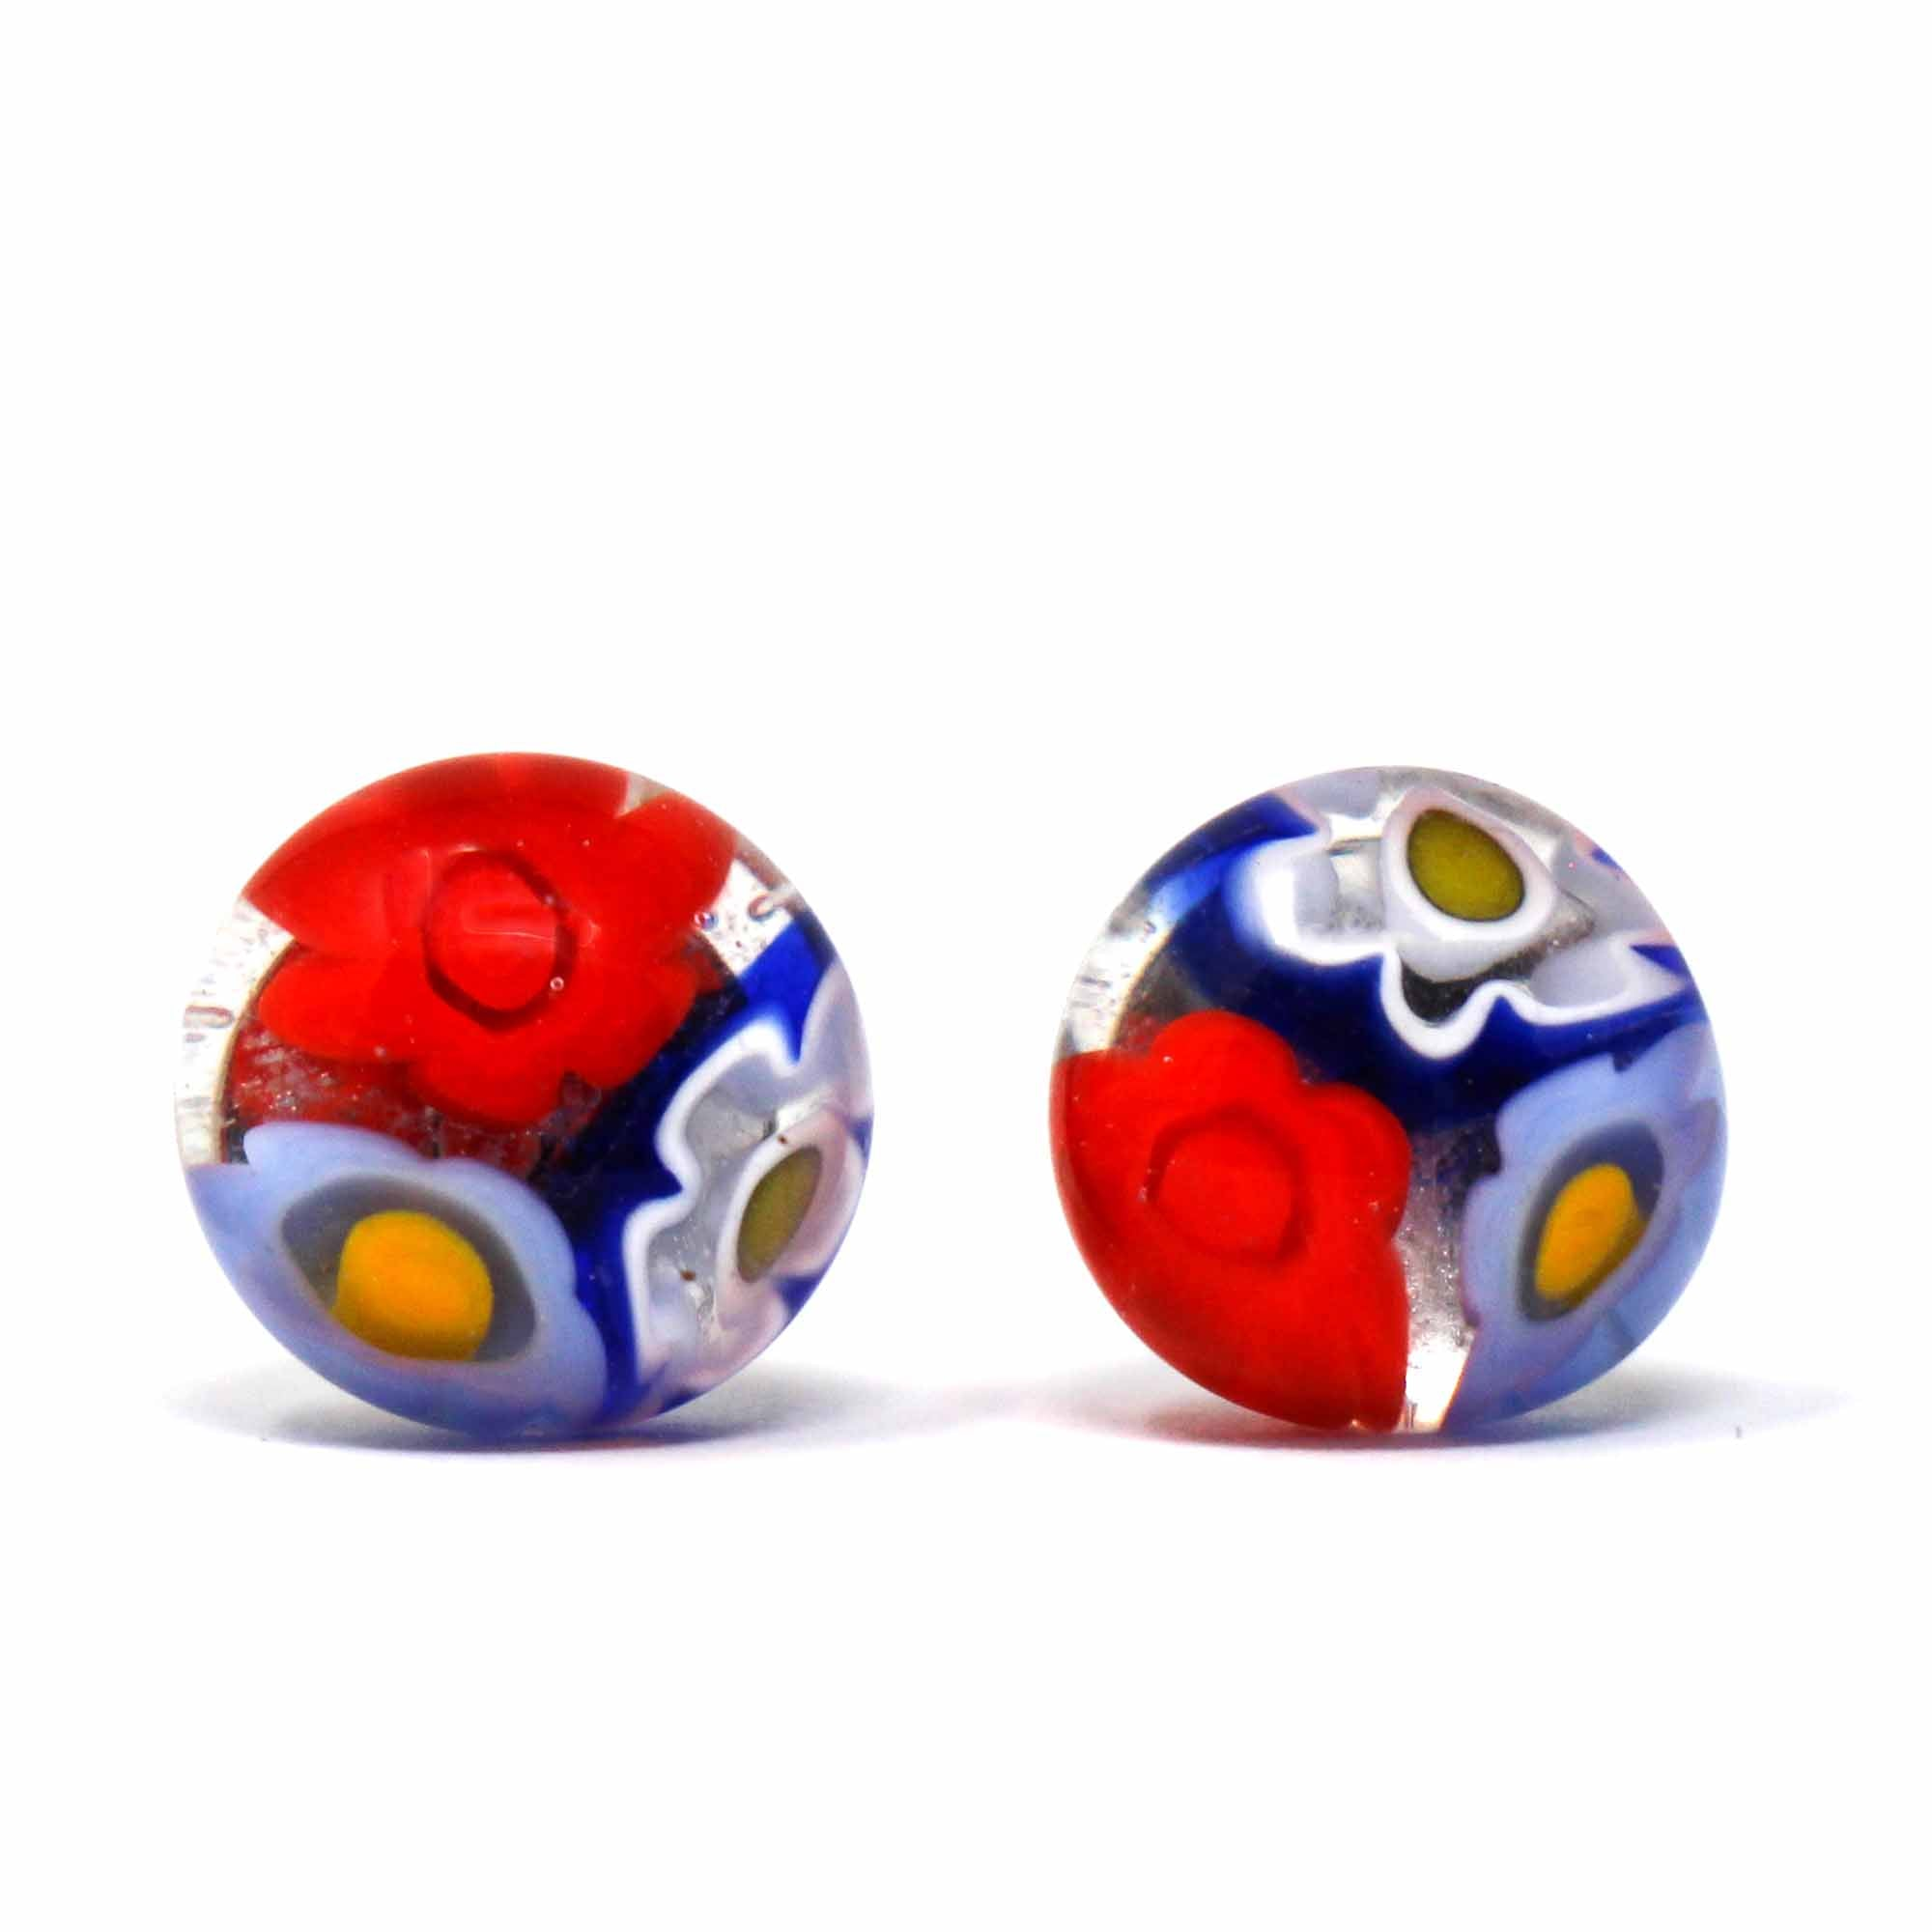 Round Glass Stud Earrings, Red and Blue Flowers - Pack of 3